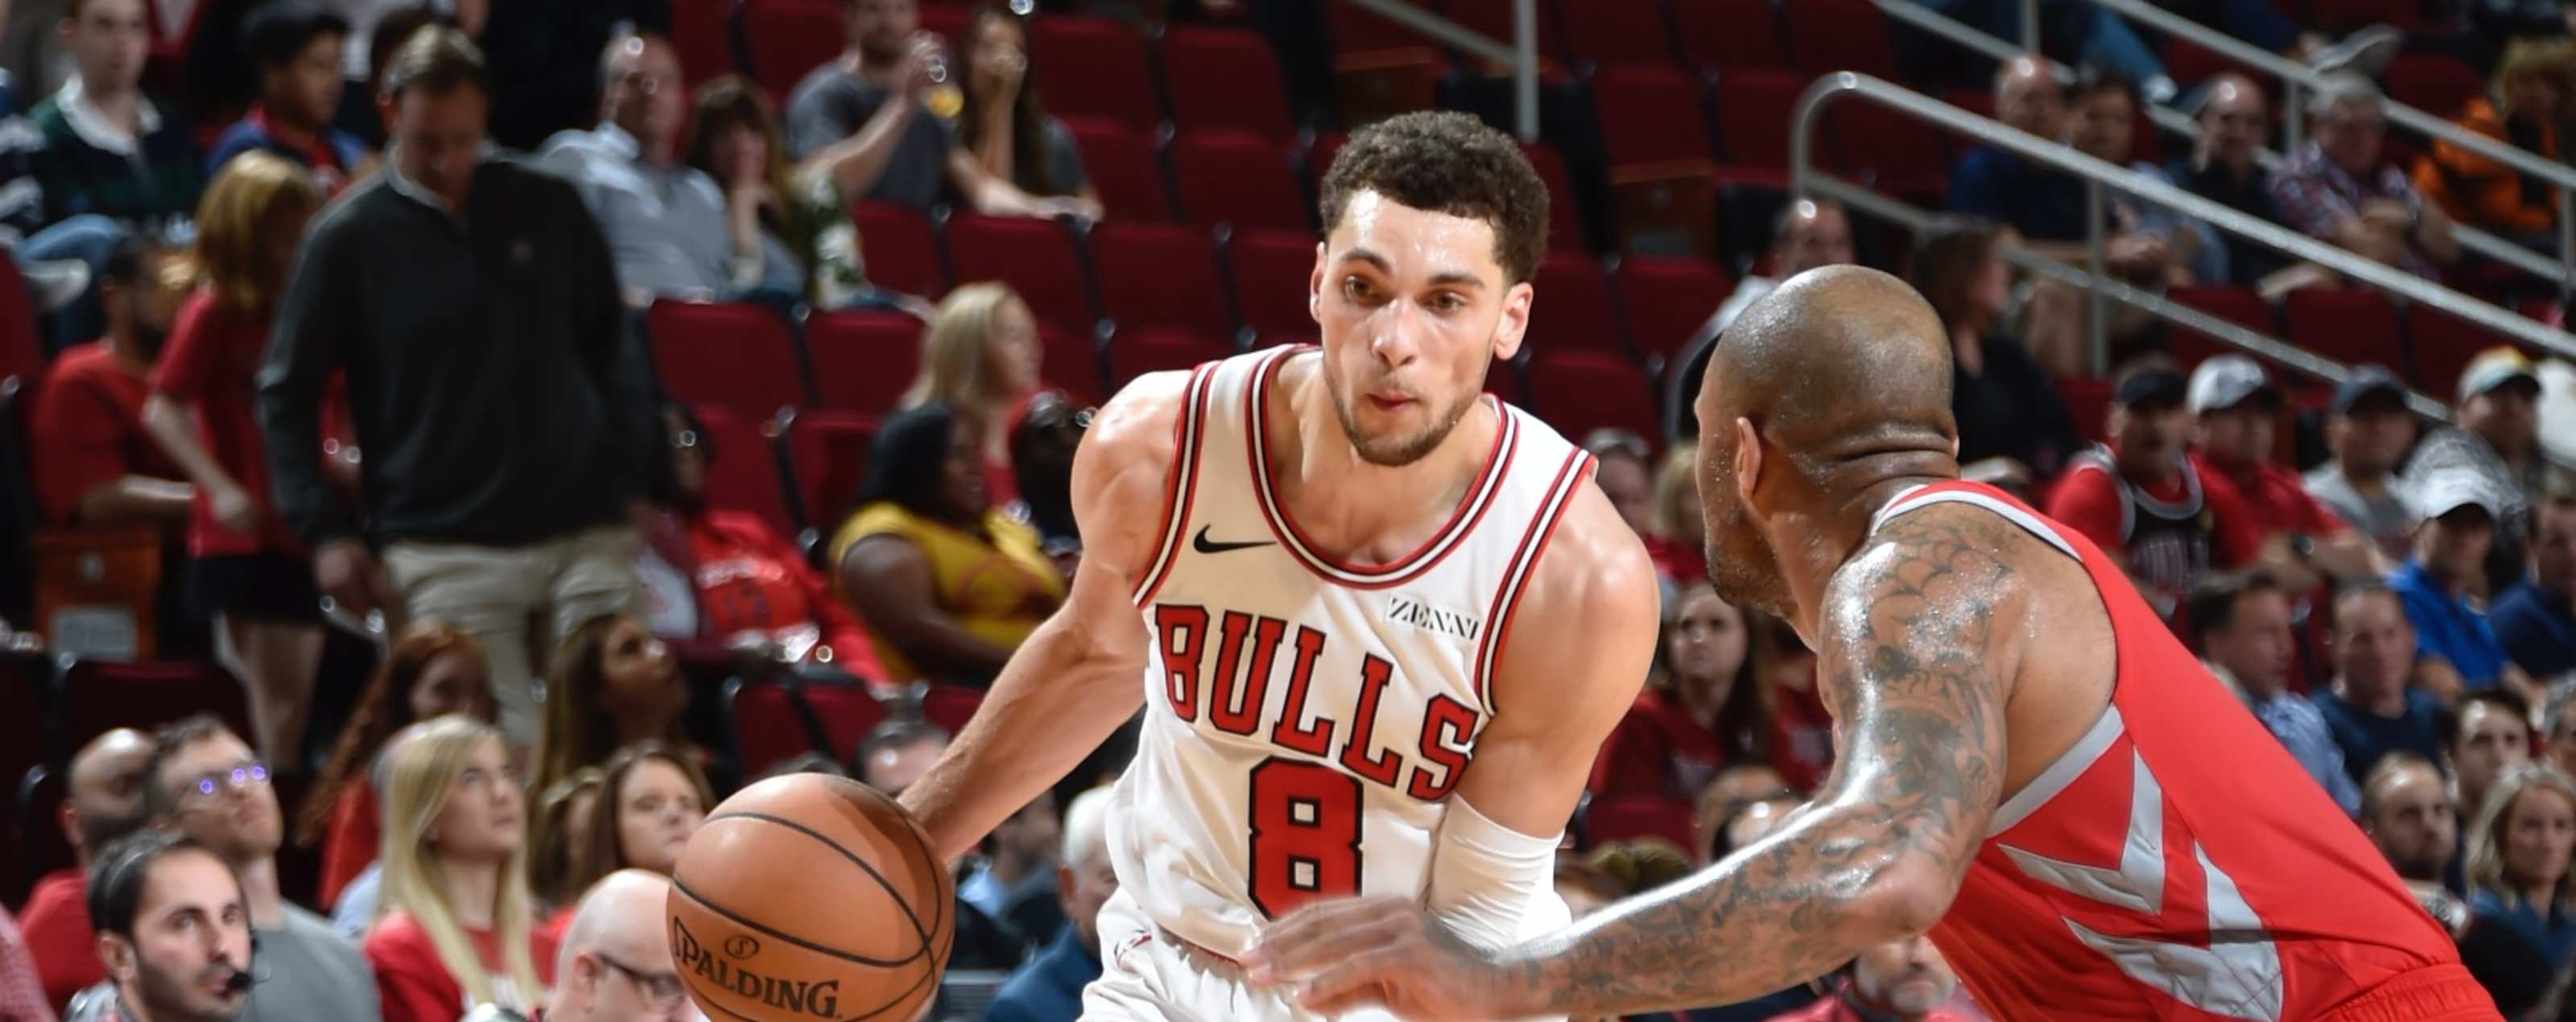 chuck's daily check in - 12.02.18 | chicago bulls